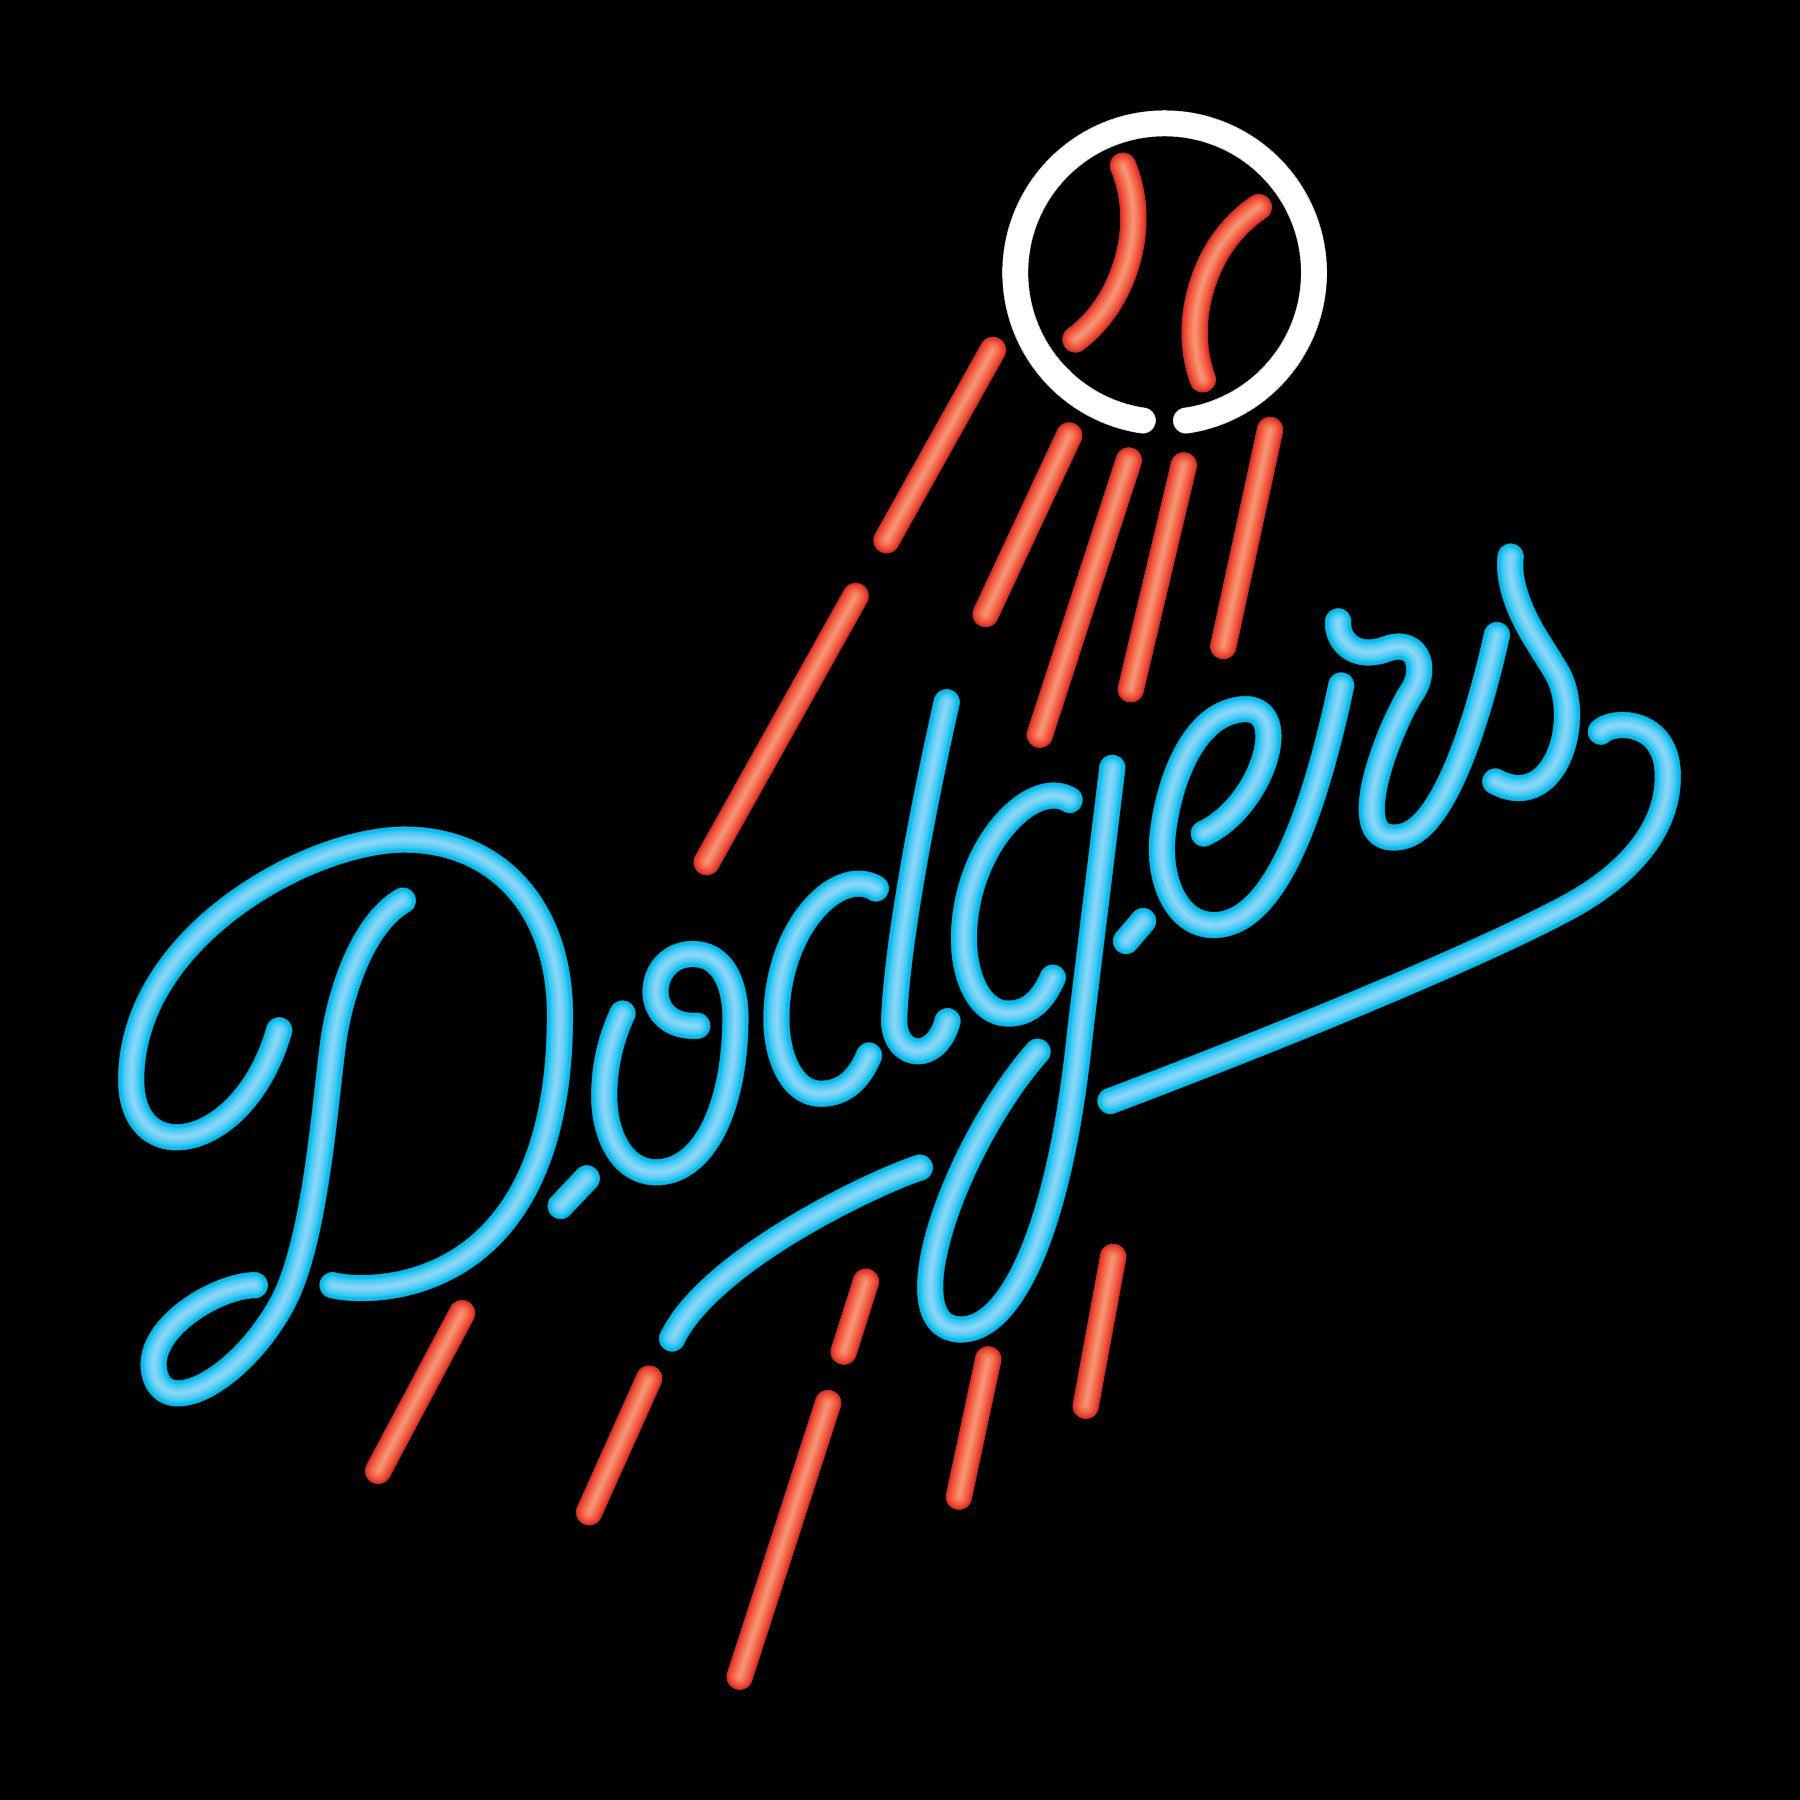 dodgers wallpapers wallpaper cave